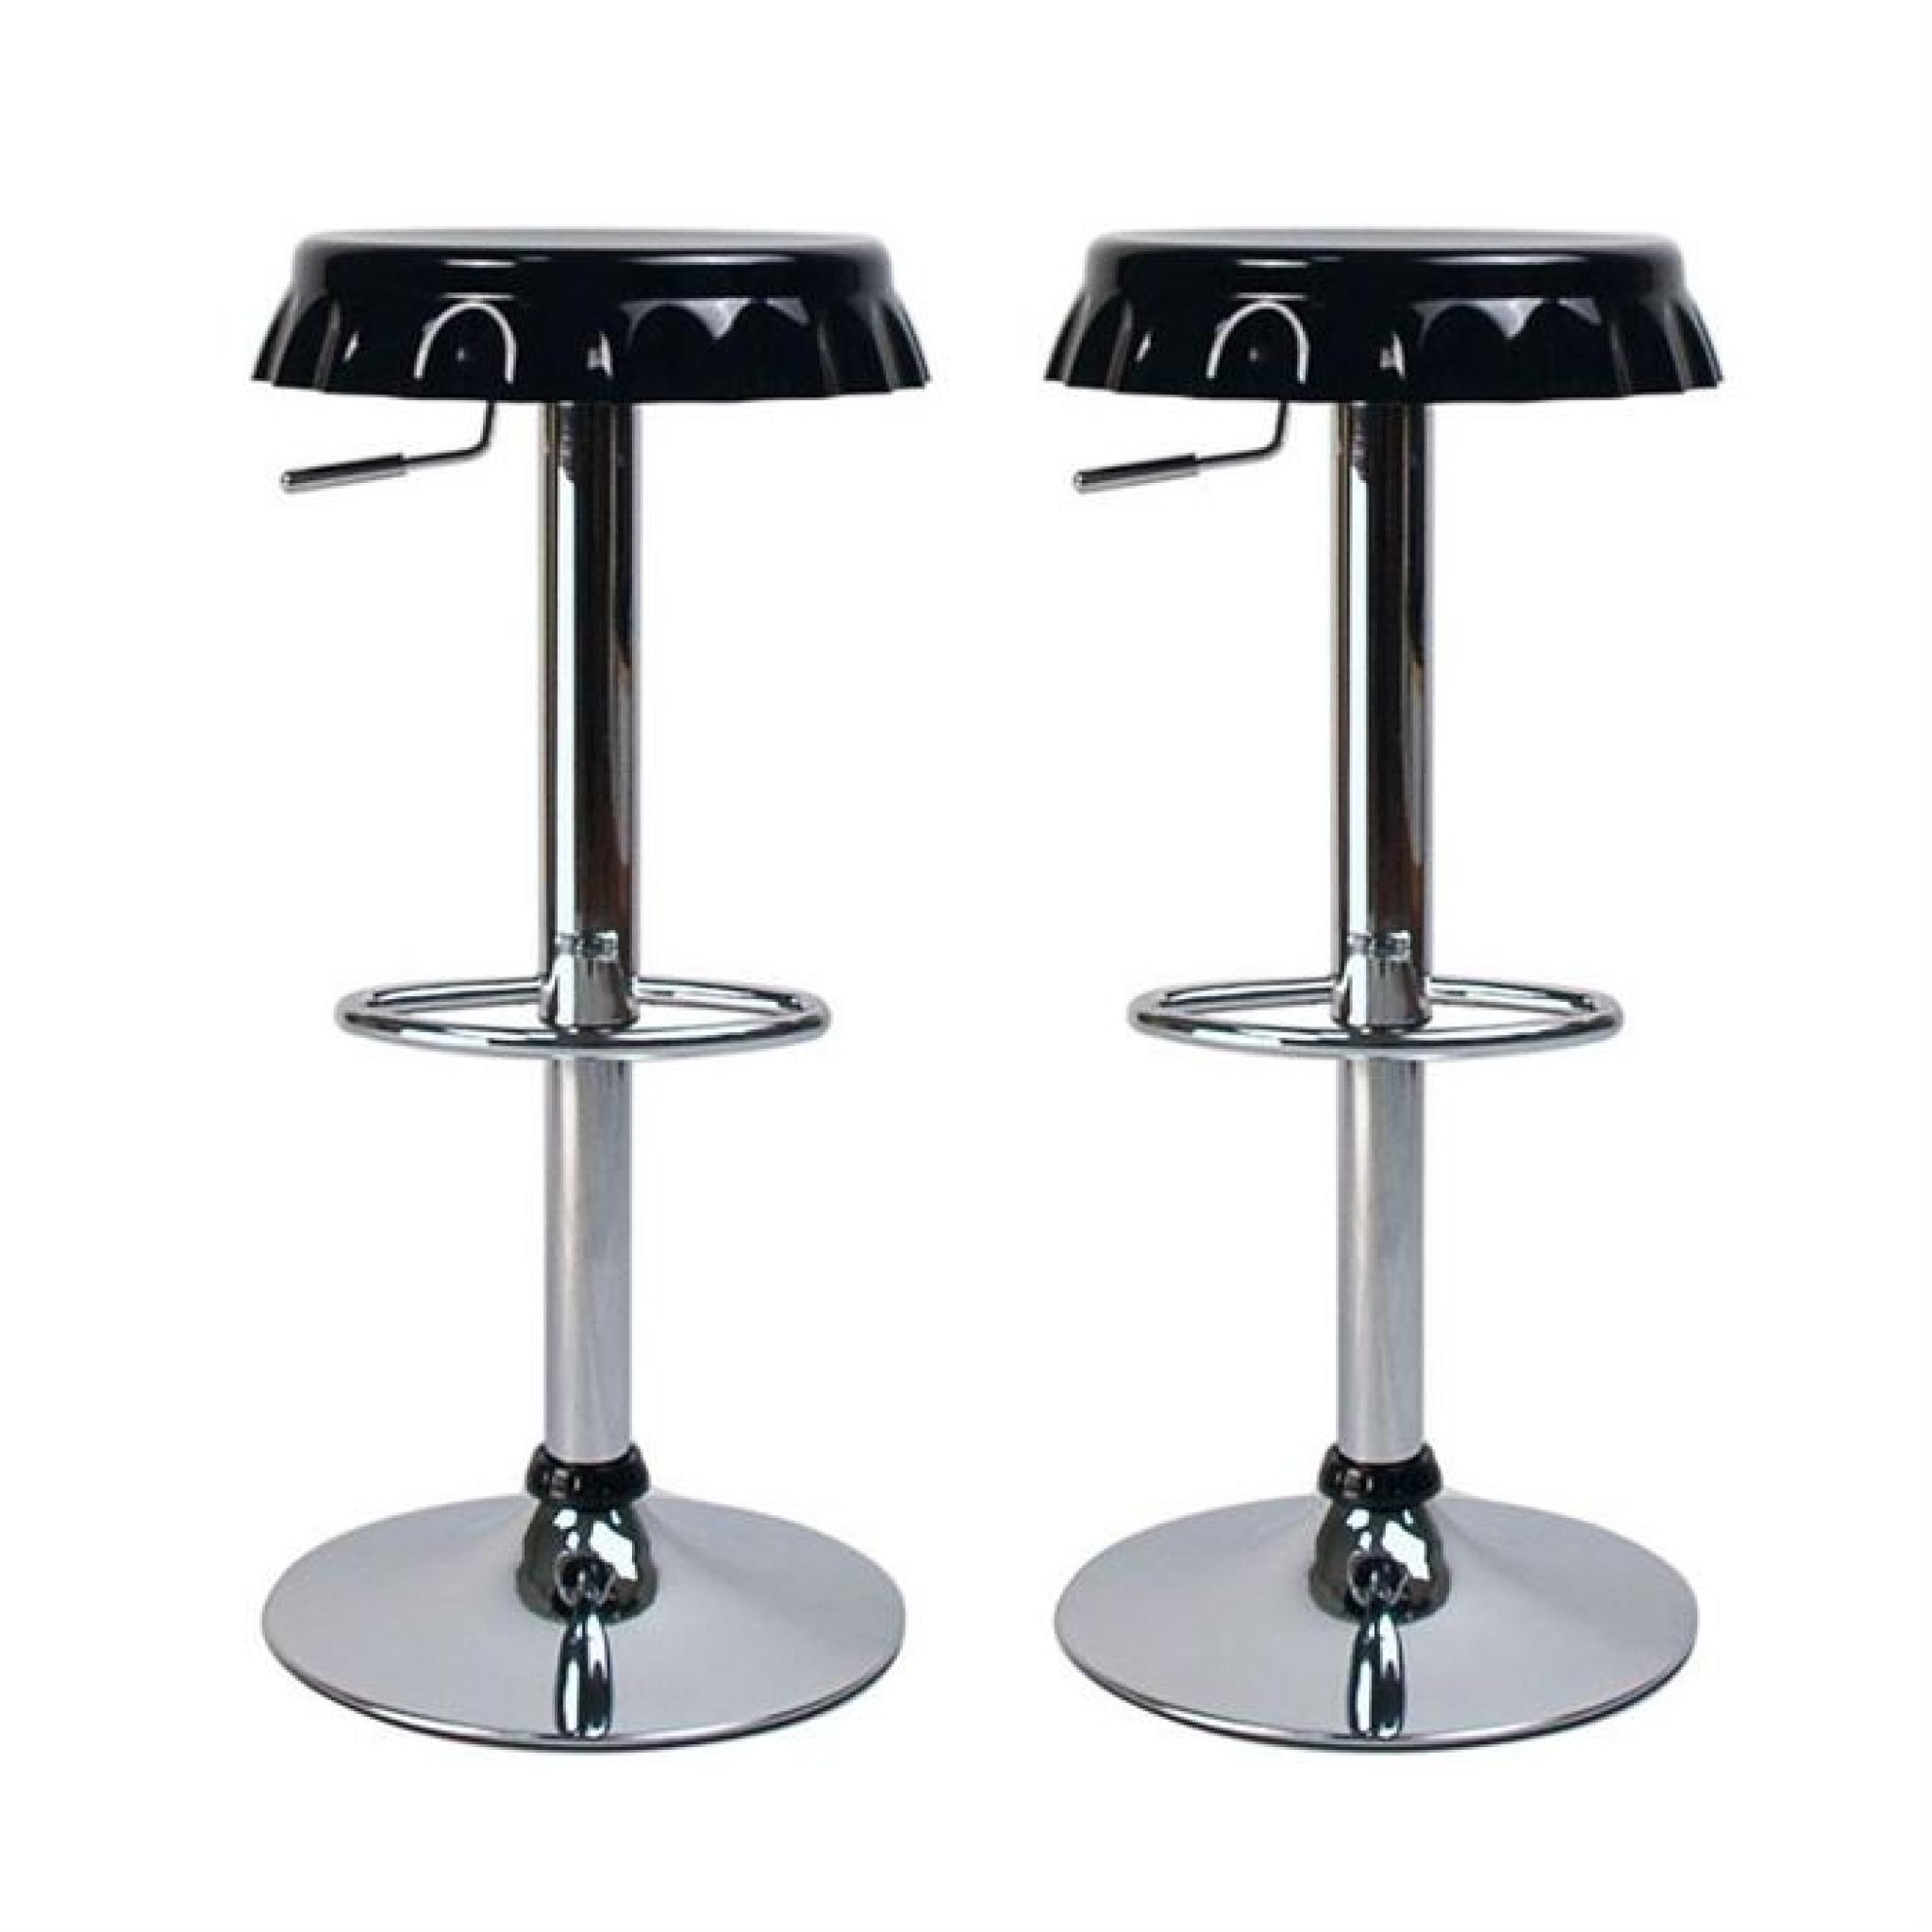 tabourets de bar cuisine noir capsule lot de 2 achat vente tabouret de bar pas cher. Black Bedroom Furniture Sets. Home Design Ideas